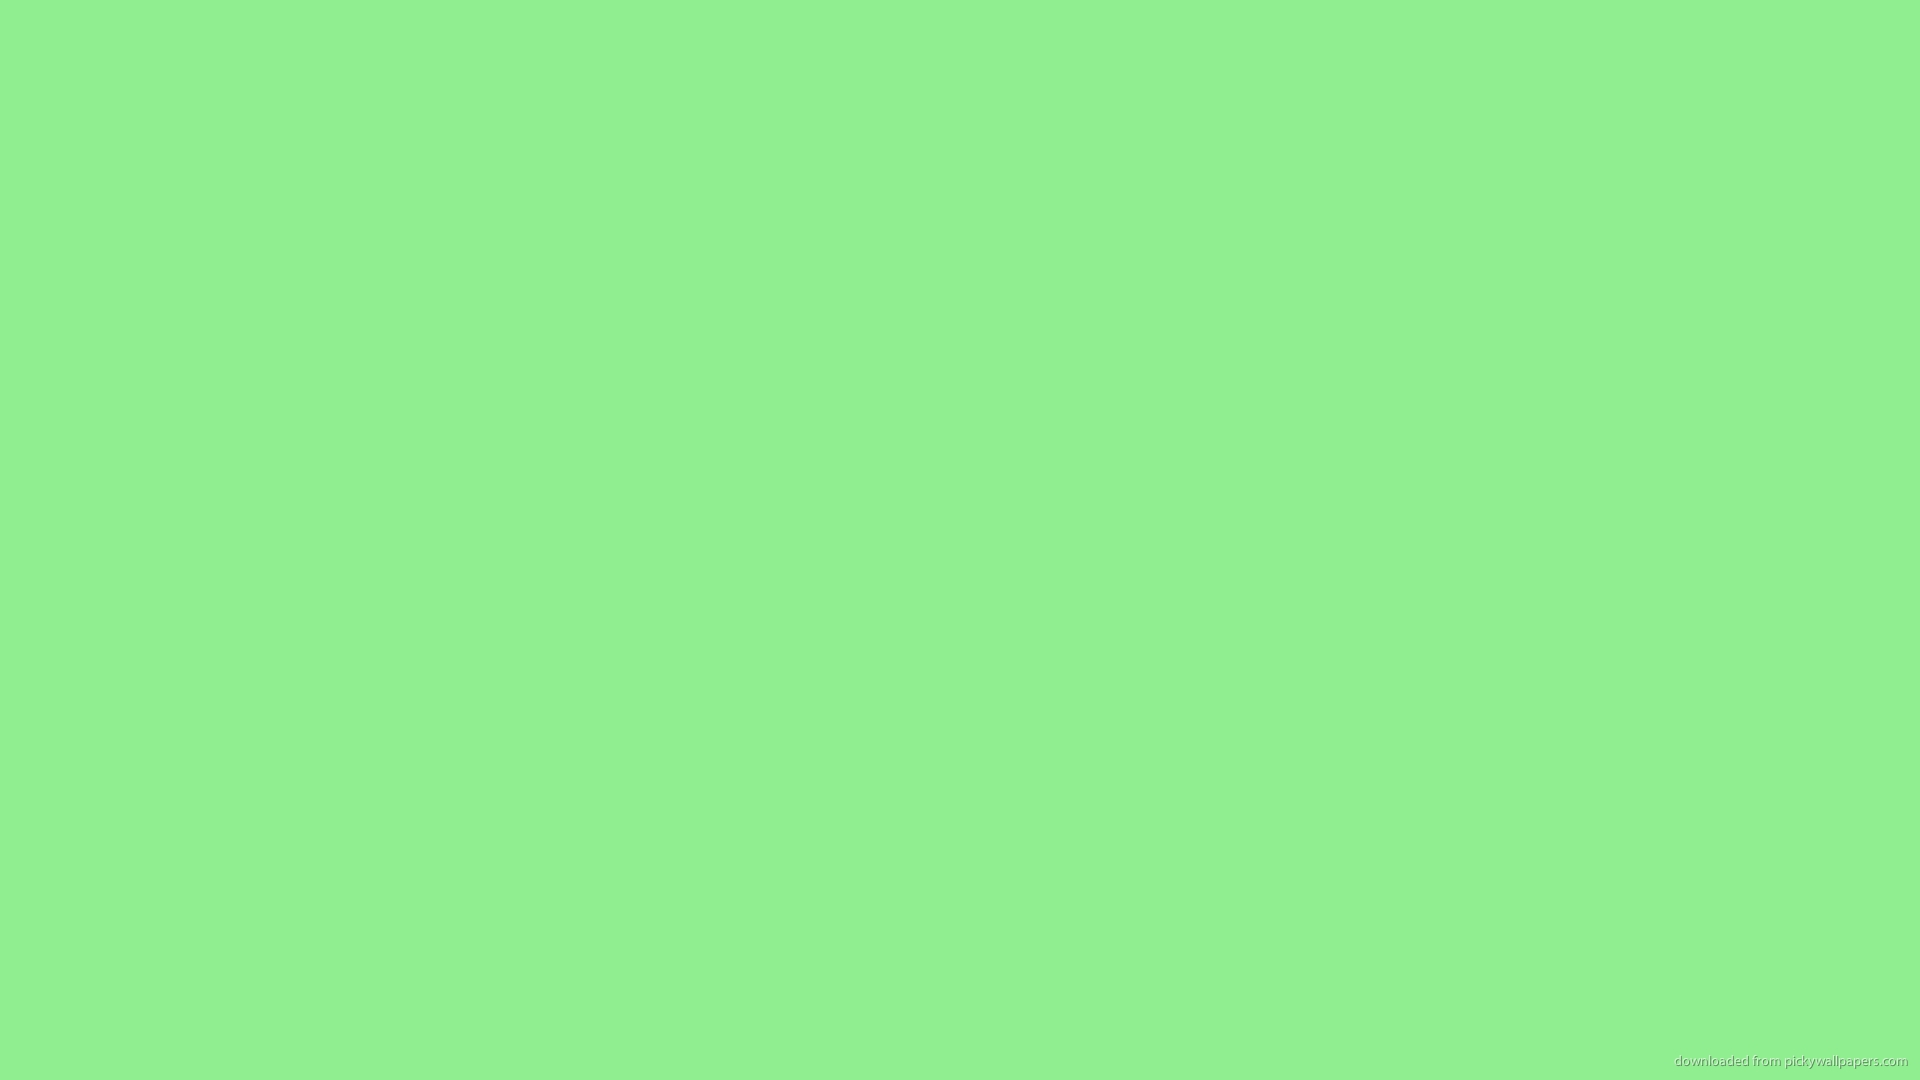 Solid Light Green Color Wallpaper Picture For iPhone Blackberry iPad 1920x1080